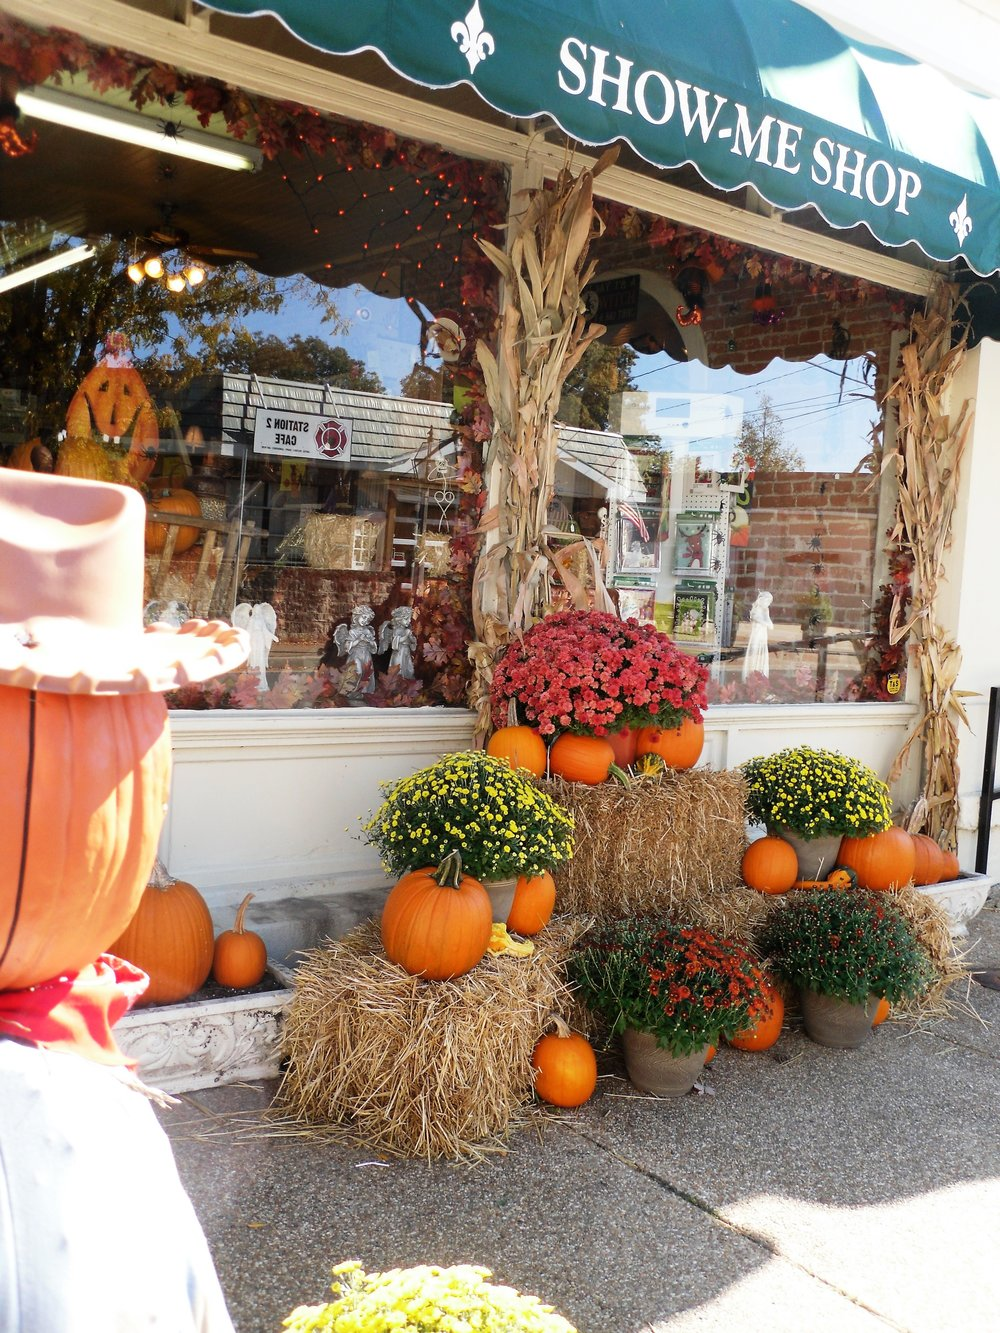 Fall flair in abundance outside of the ever-popular Show Me Shop in historic Ste Genevieve.